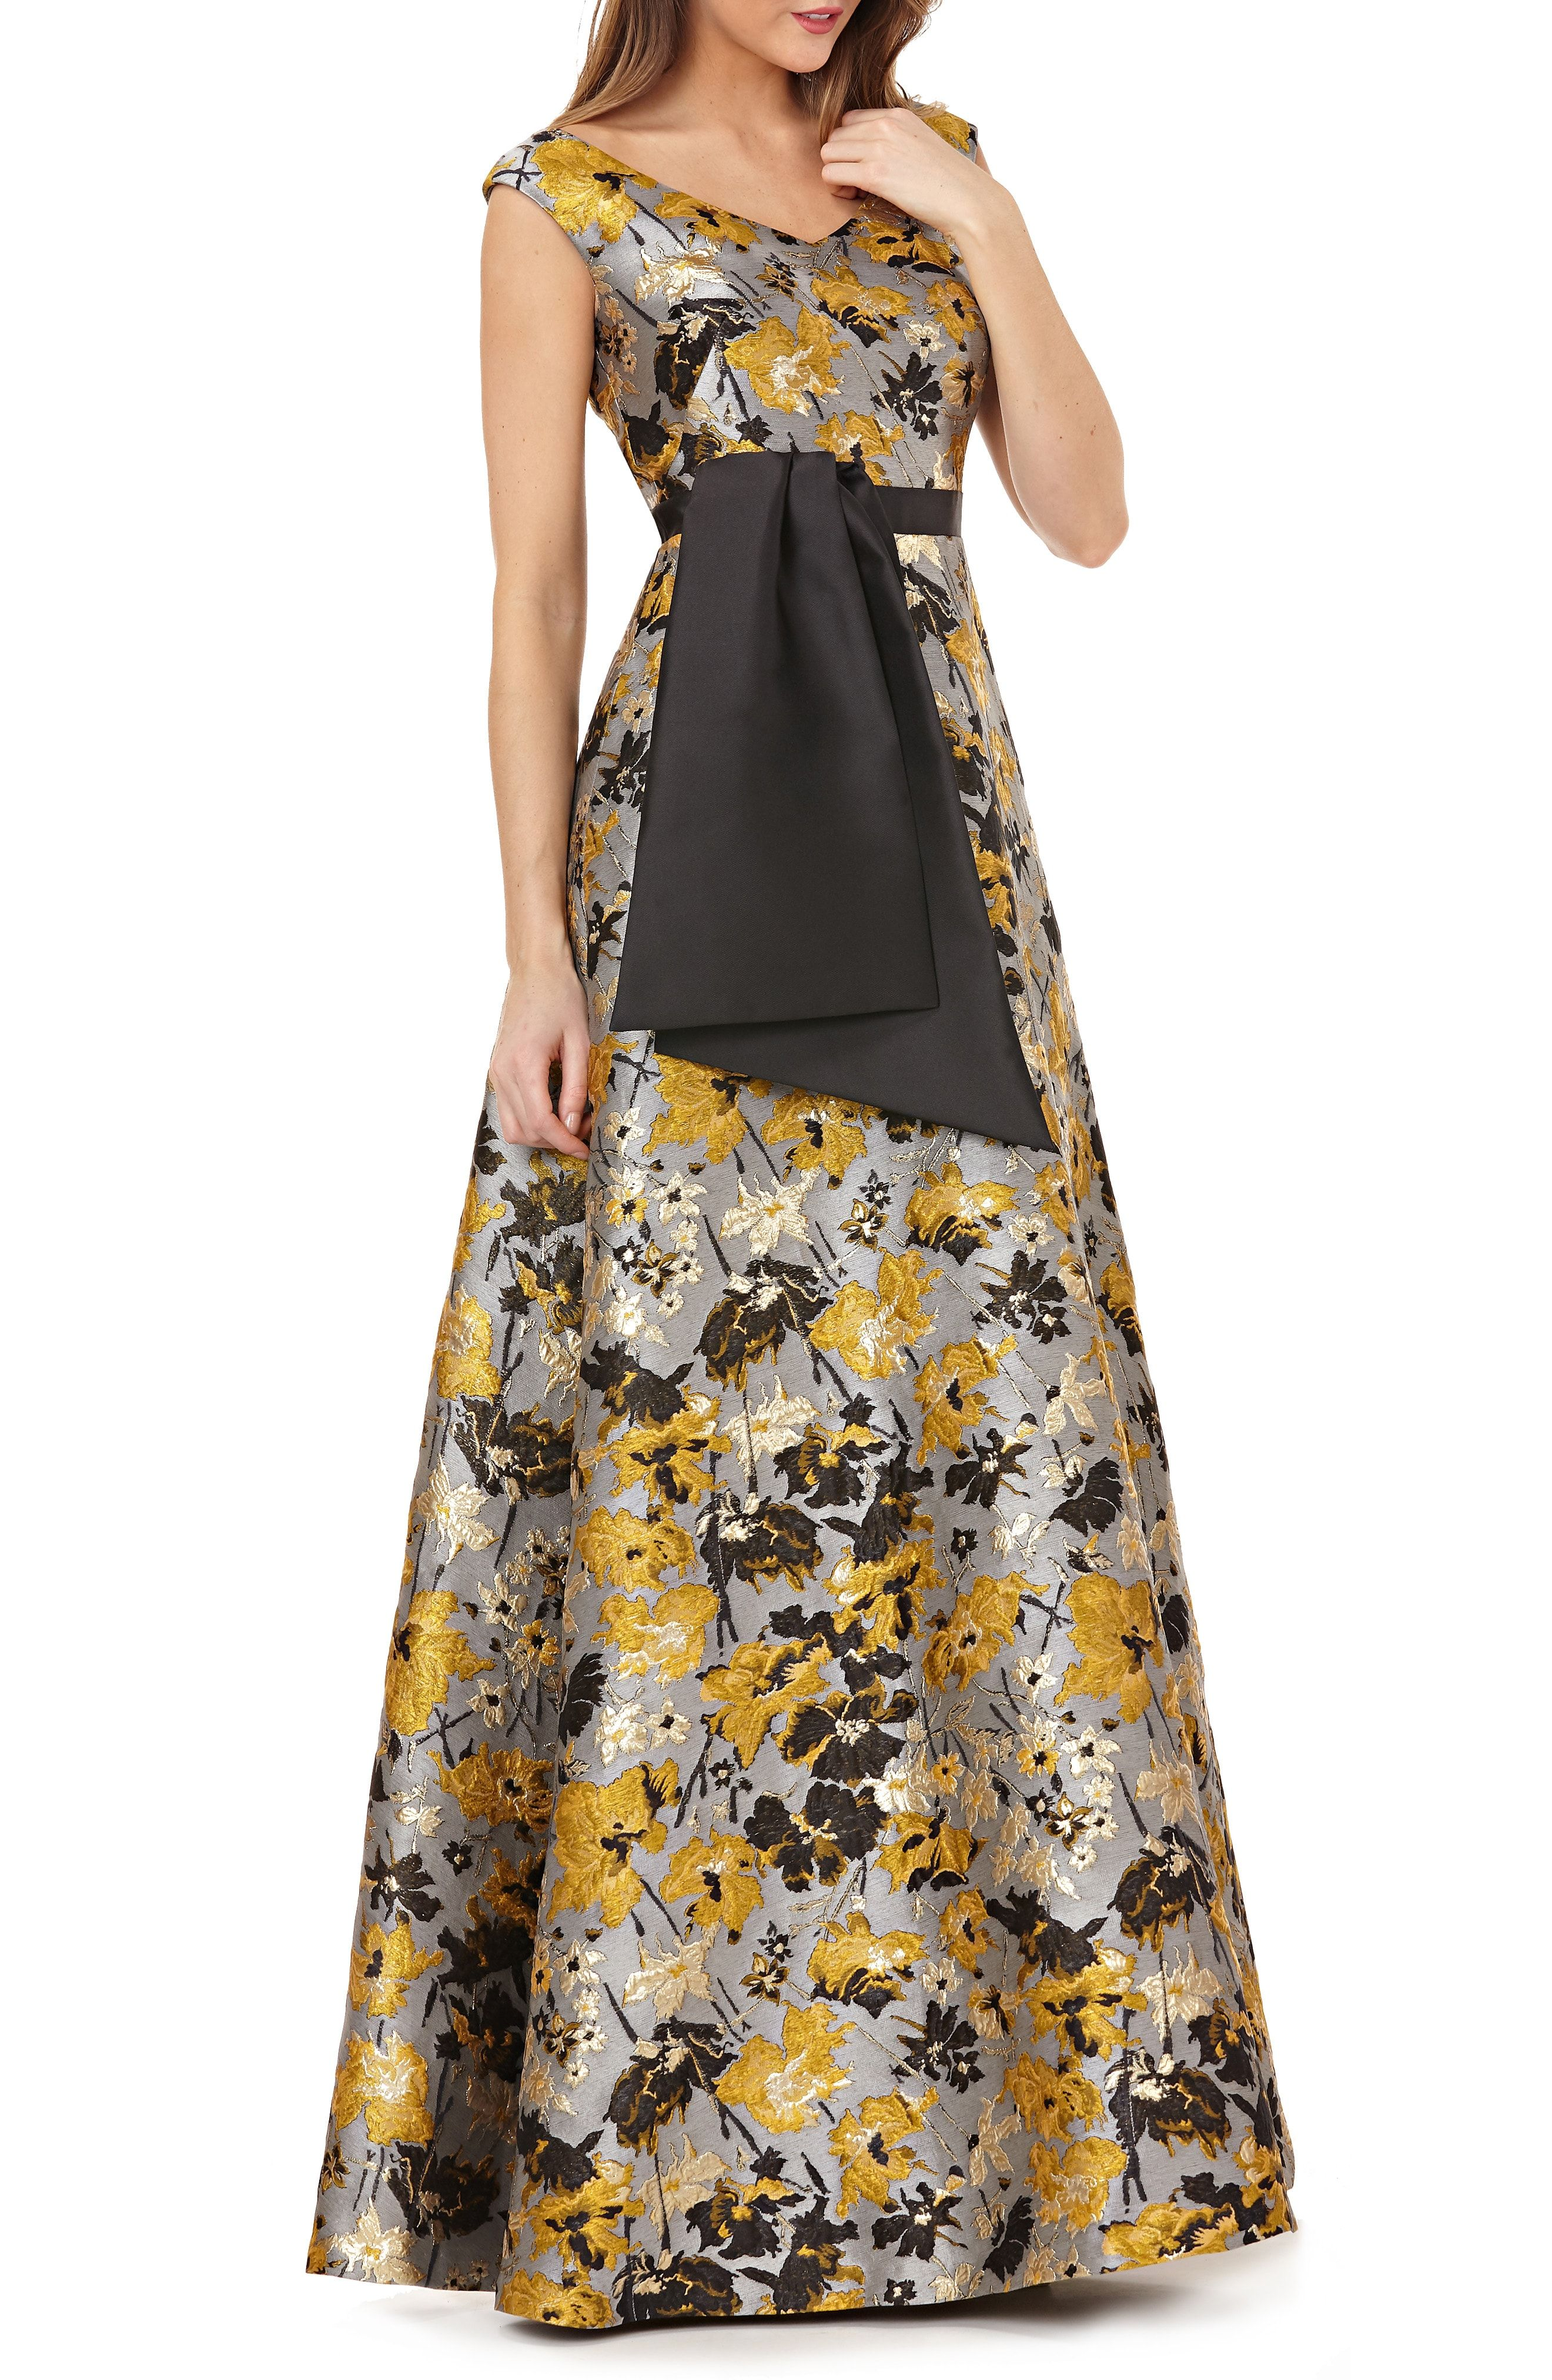 23 Best Winter Wedding Guest Dresses What To Wear To A Winter Wedding